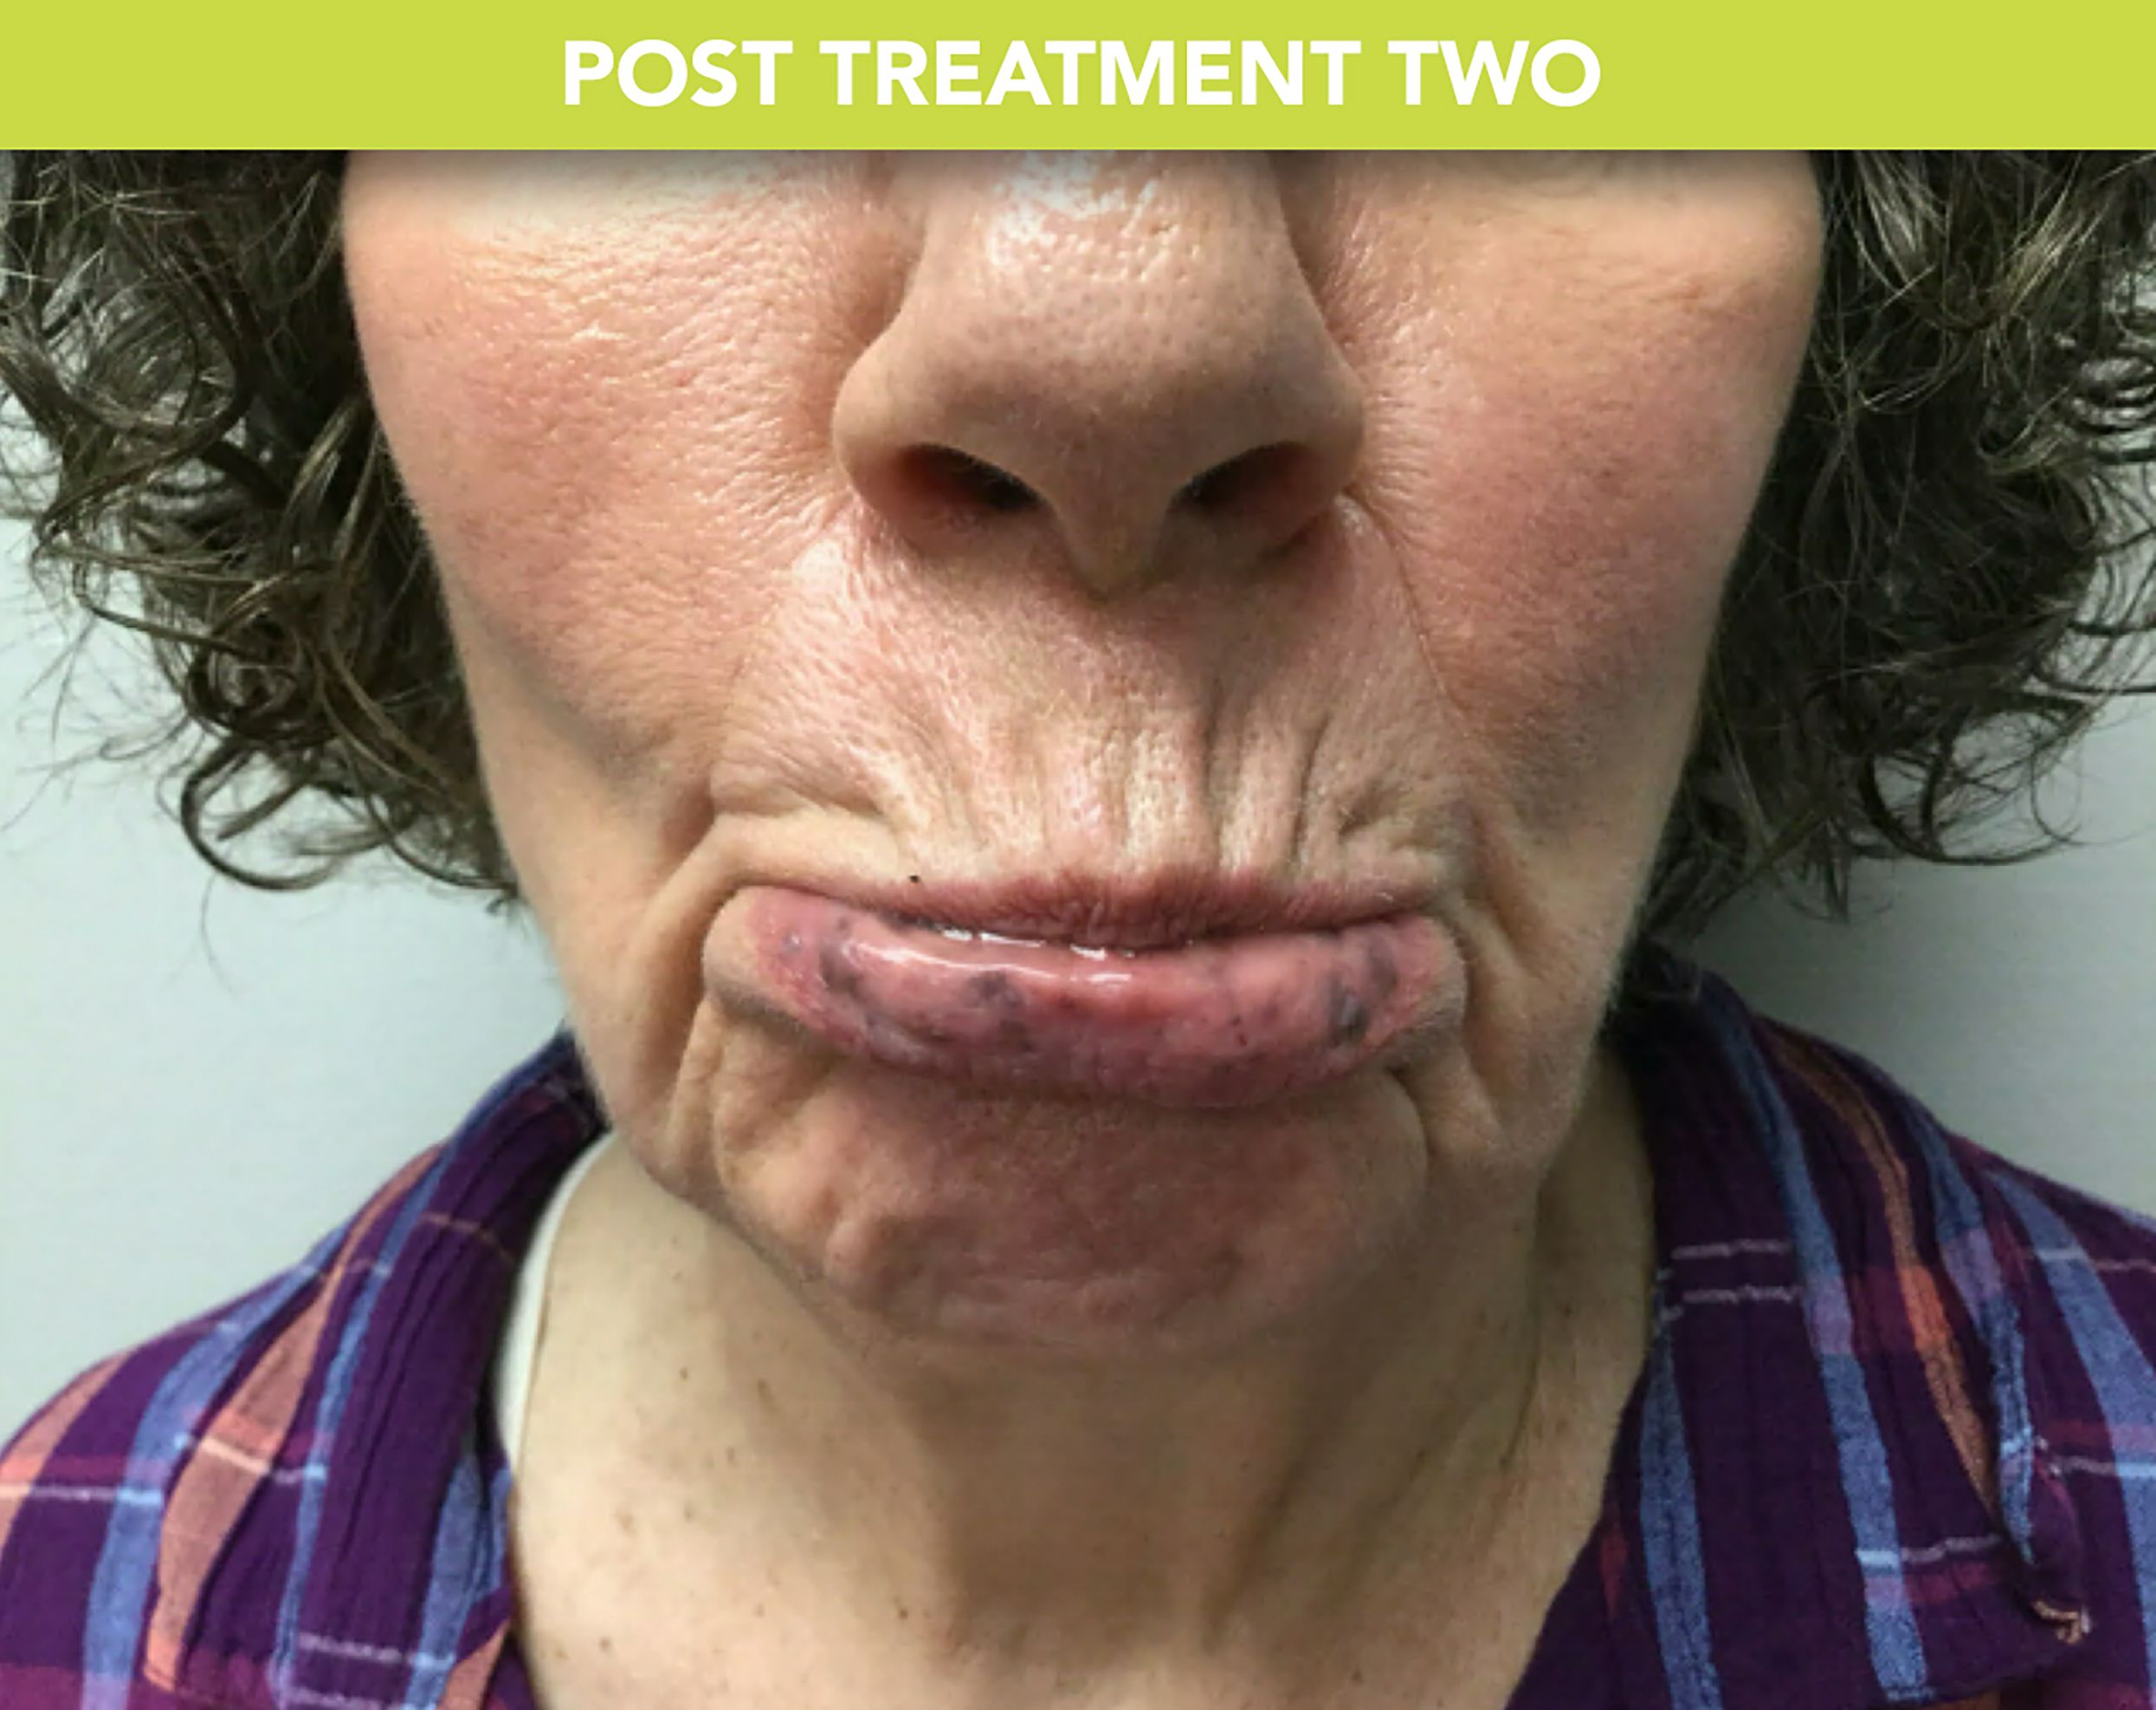 post treatment two2 52442f72a0c63a186924fdafa296858c